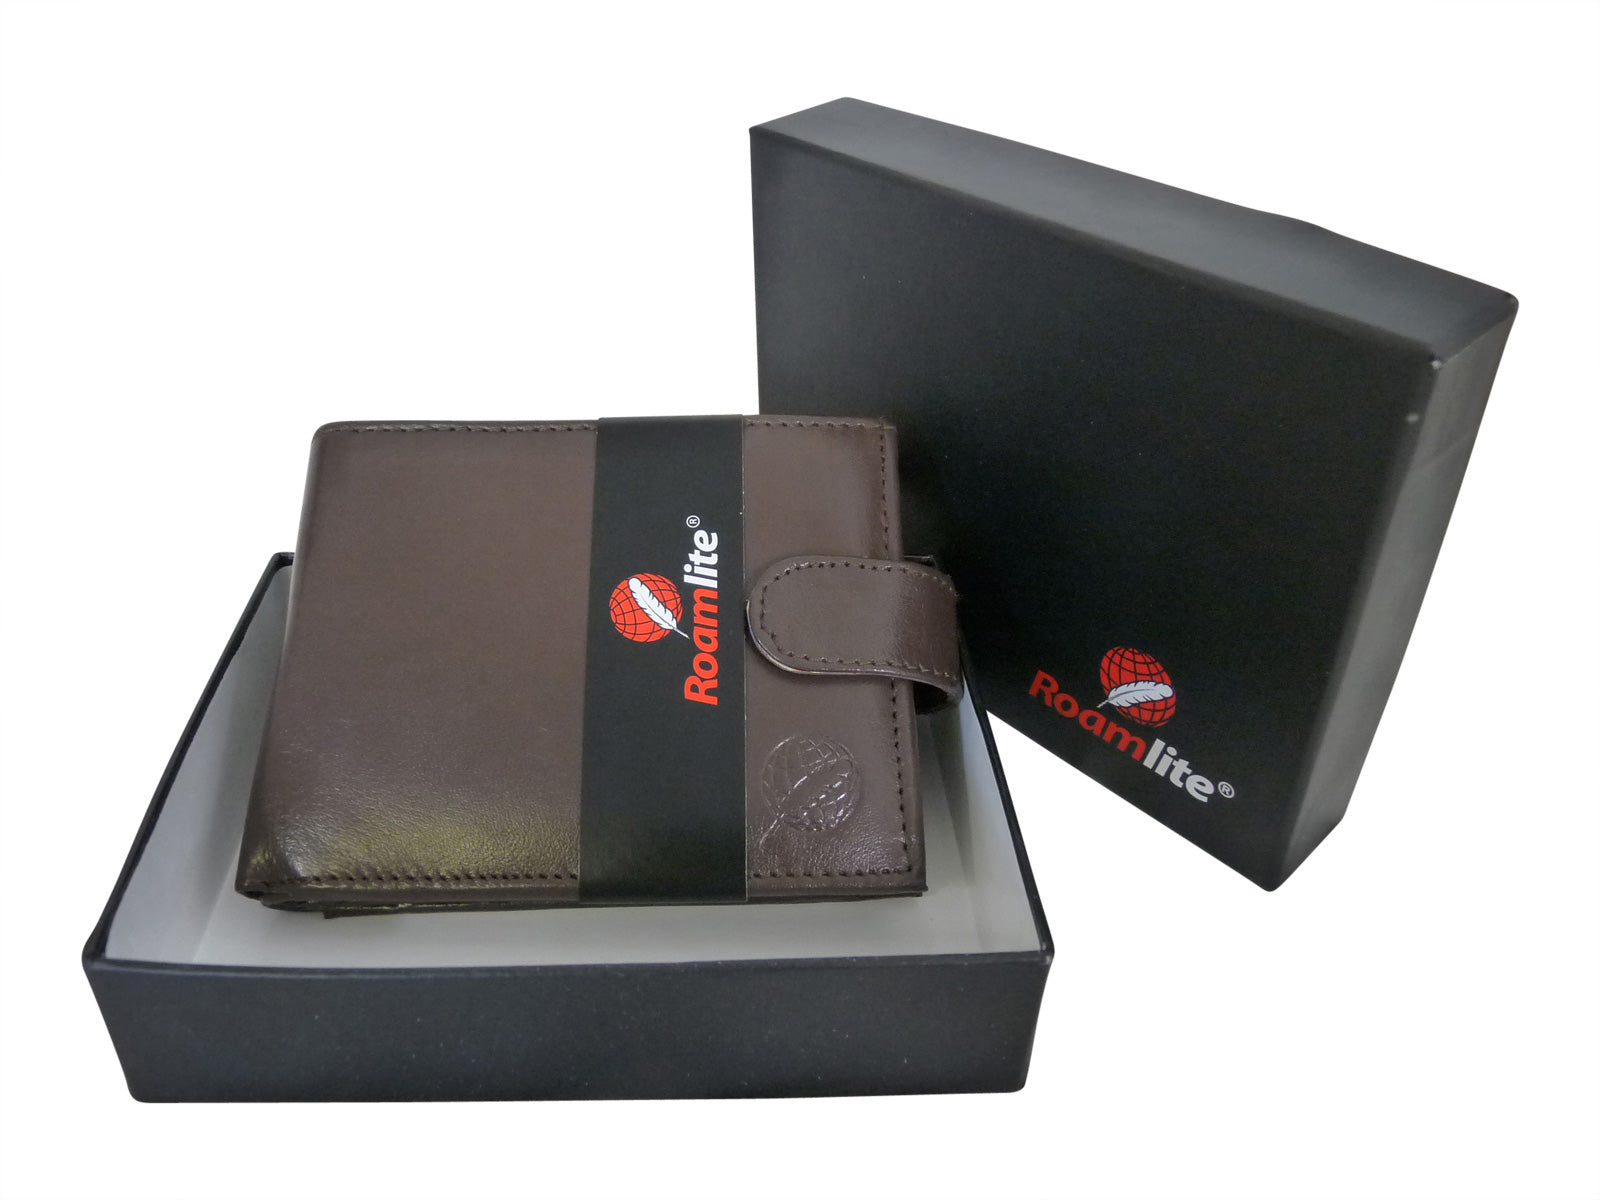 Black Leather Cards Notes and Coins Wallet RL374DBX gift boxed